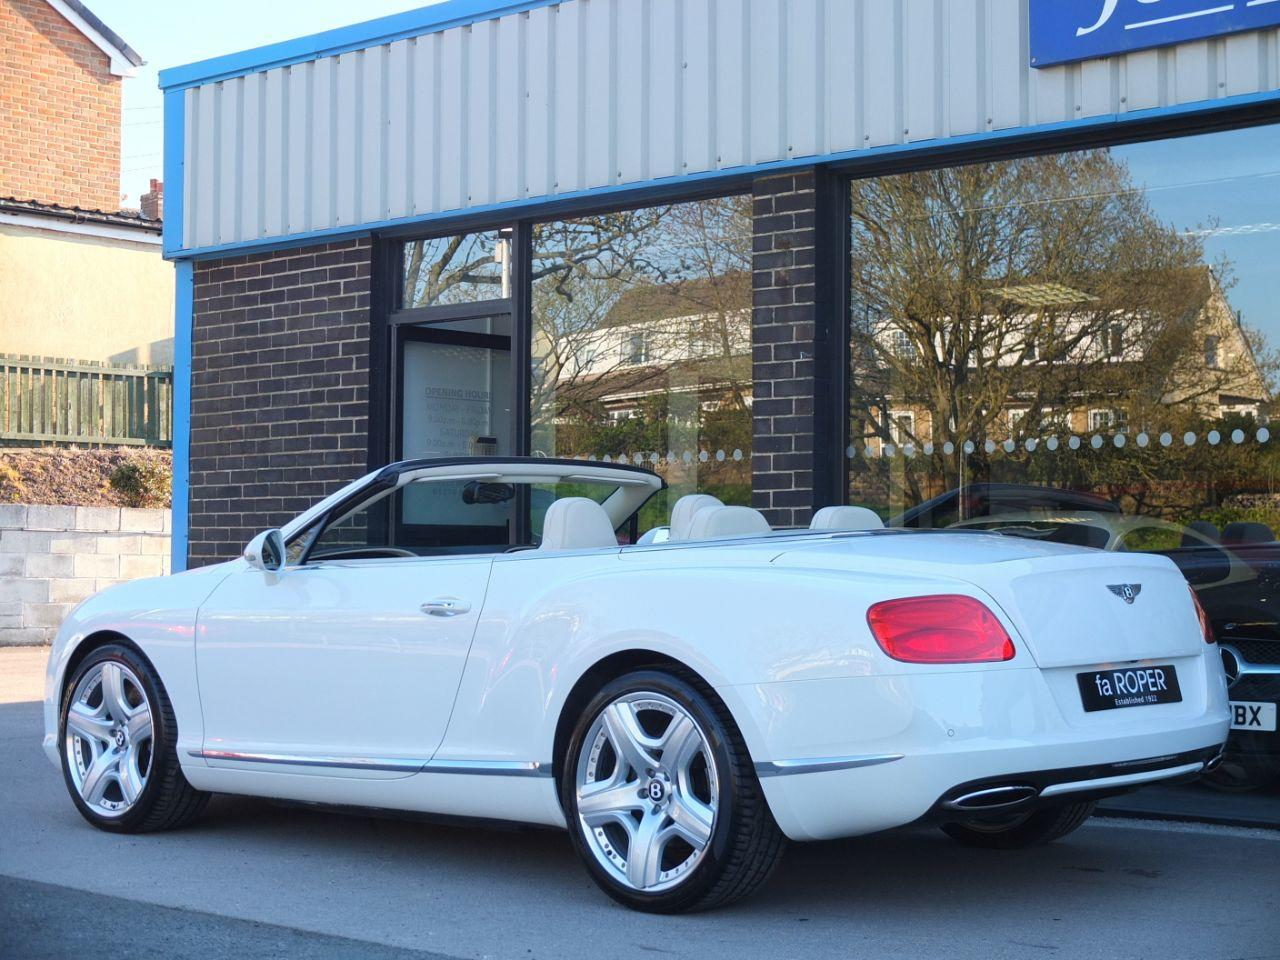 Bentley Continental GTC 6.0 W12 Facelift Convertible Petrol Glacier White